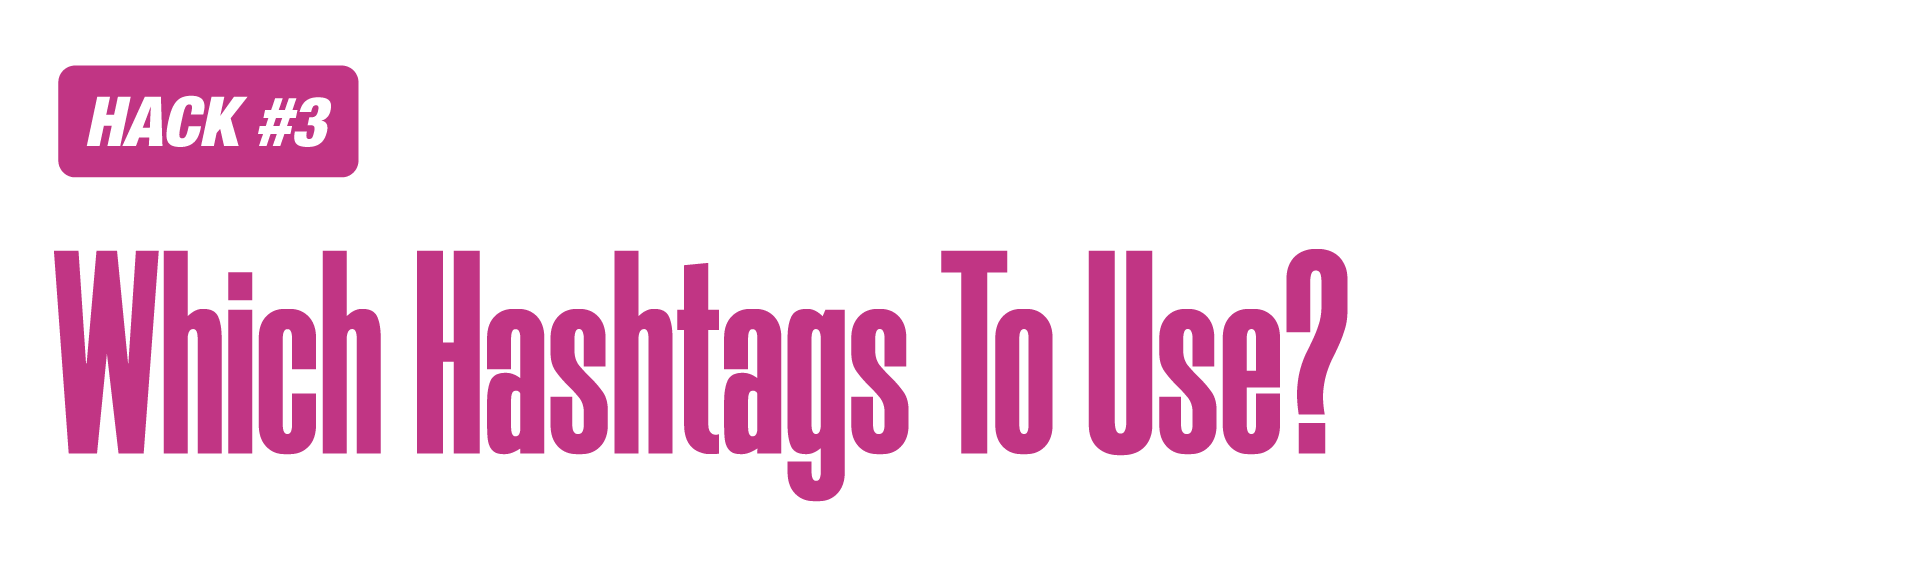 Instagram marketing hashtags relevance